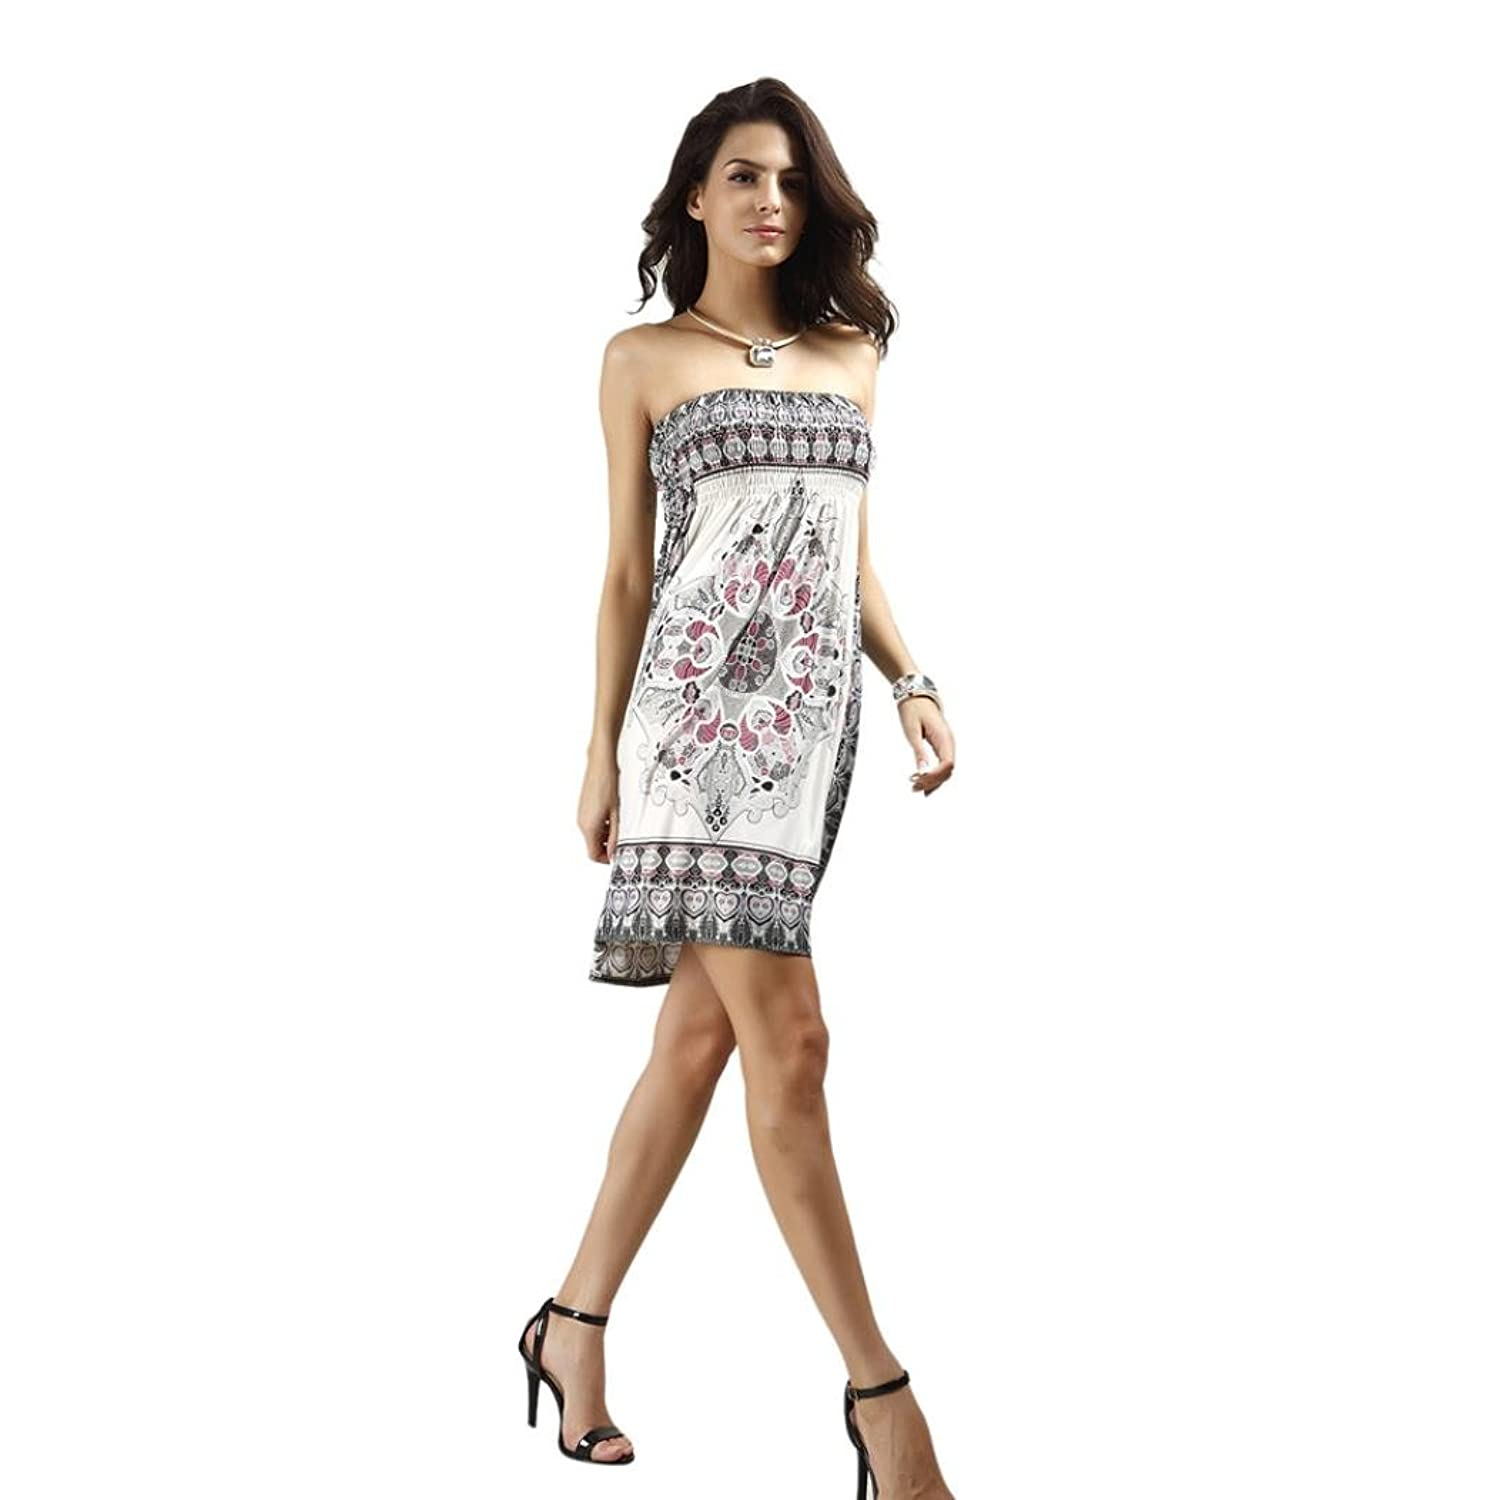 Beach Dress Vestidos, Franterd Women Vintage Ropa Mujer Print Dress at Amazon Womens Clothing store: